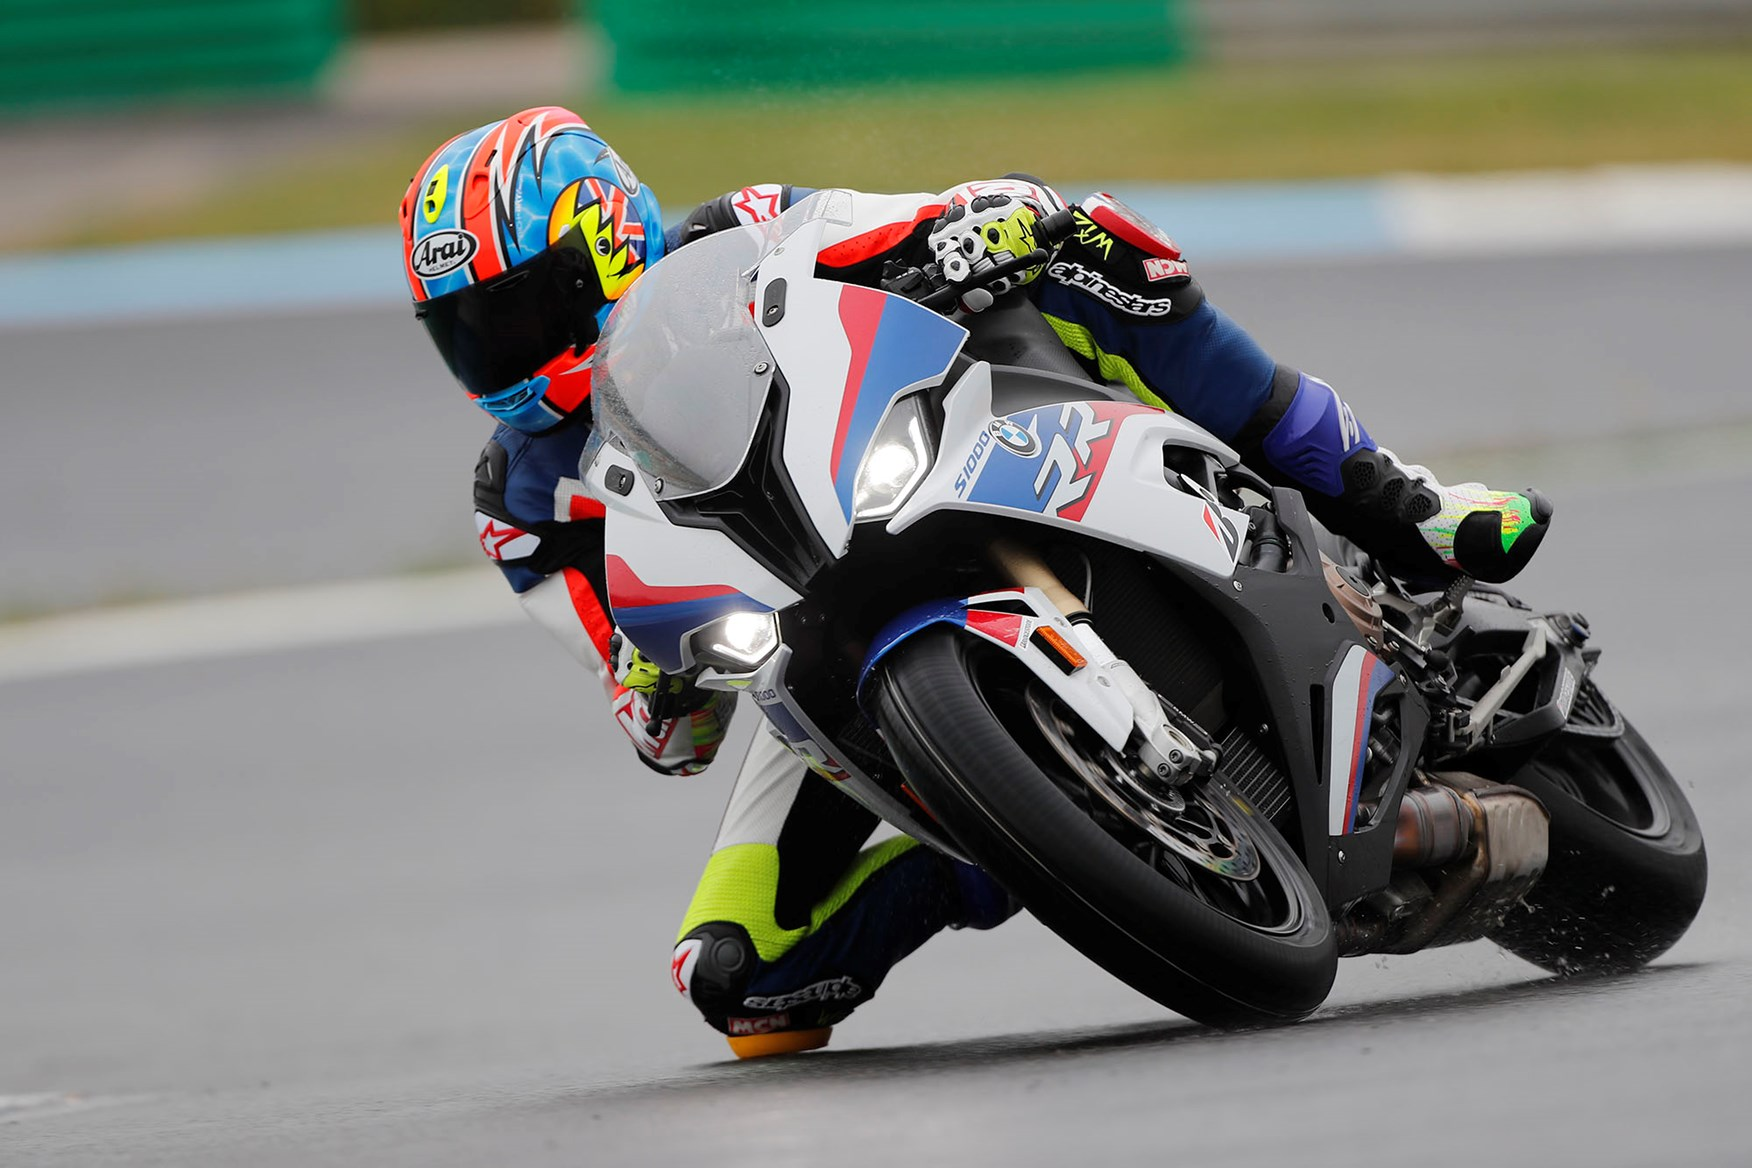 2019 BMW S1000RR: the story